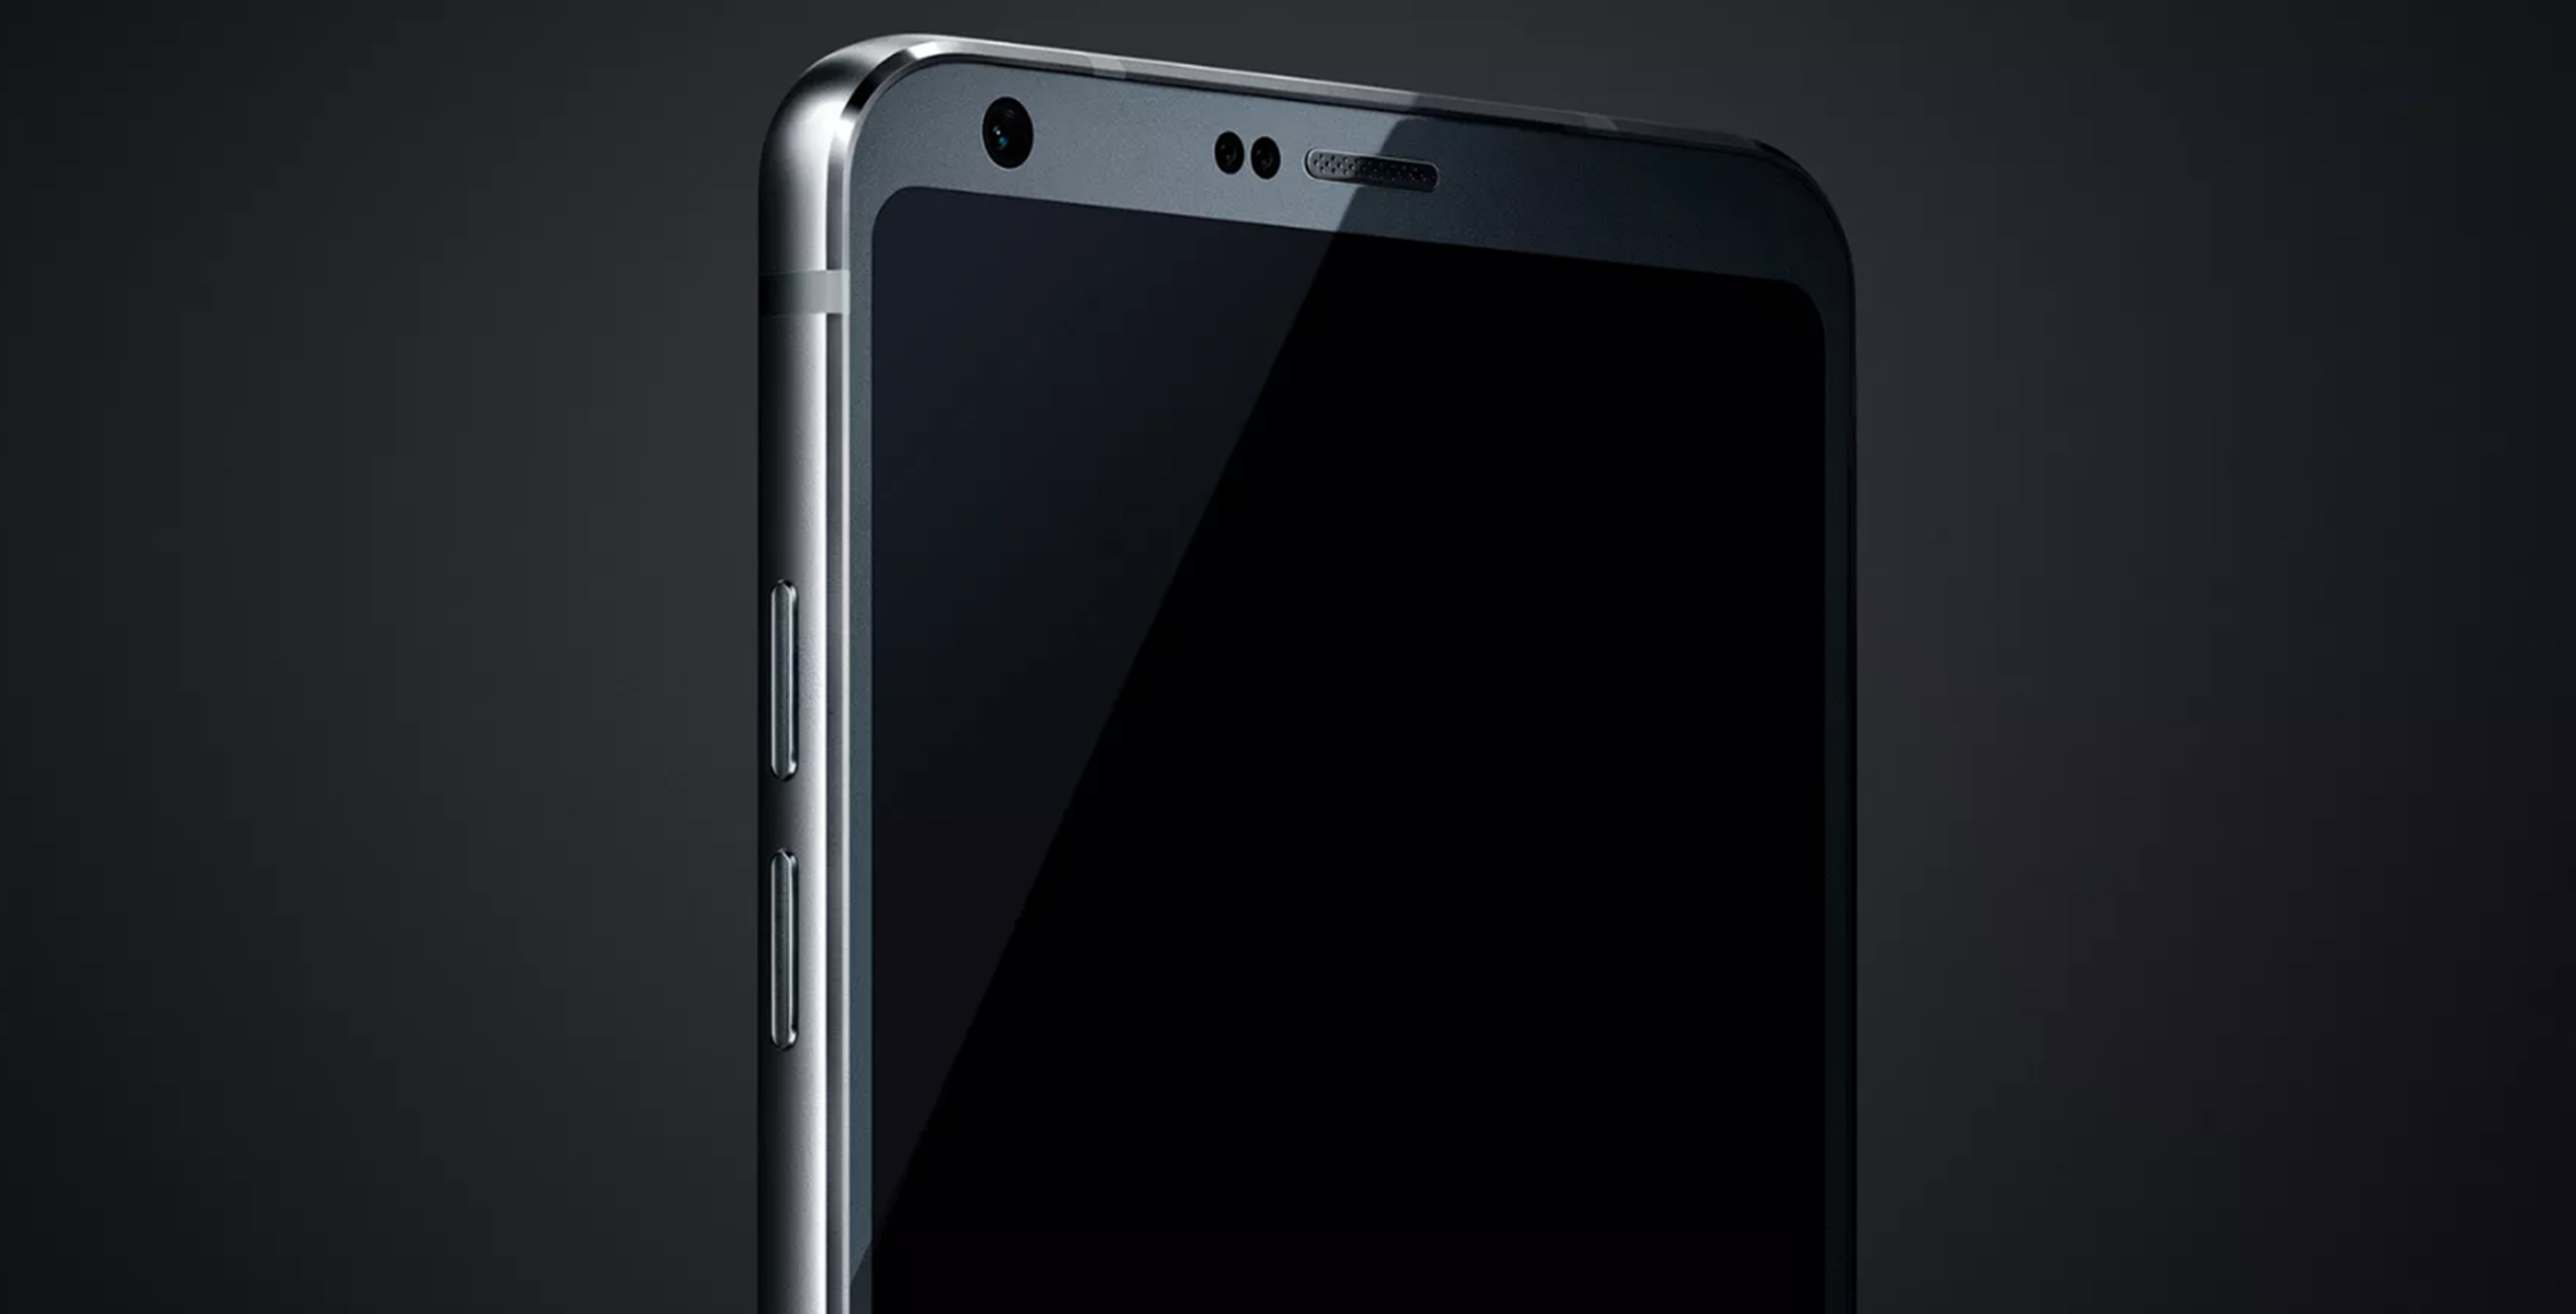 LG G6 front